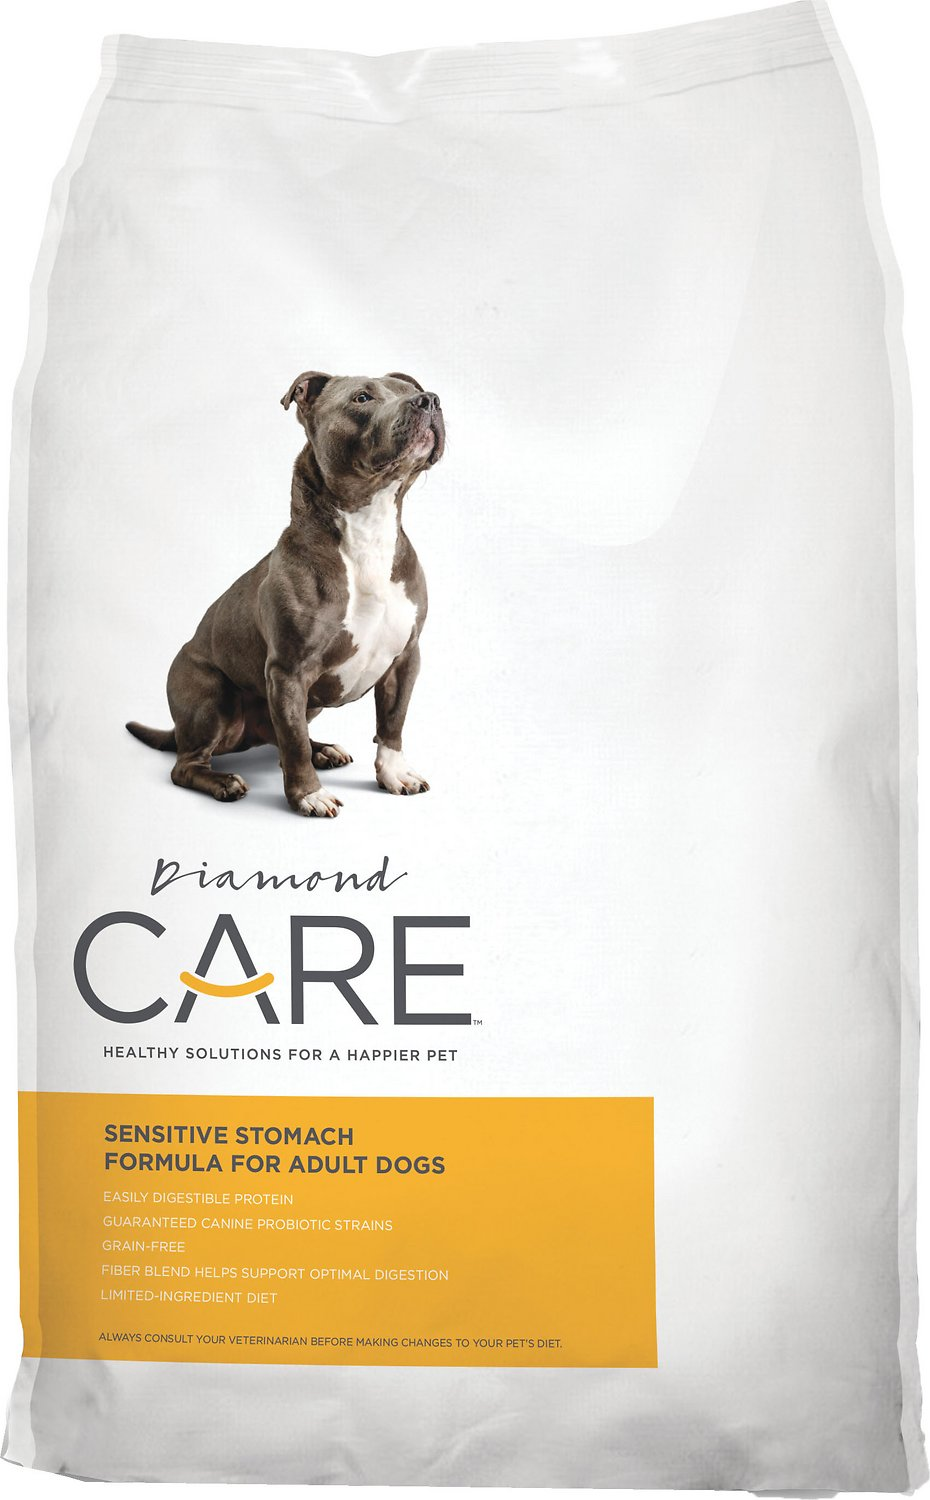 Diamond Care Sensitive Stomach Formula For Adult Dry Dog Food 8LBS